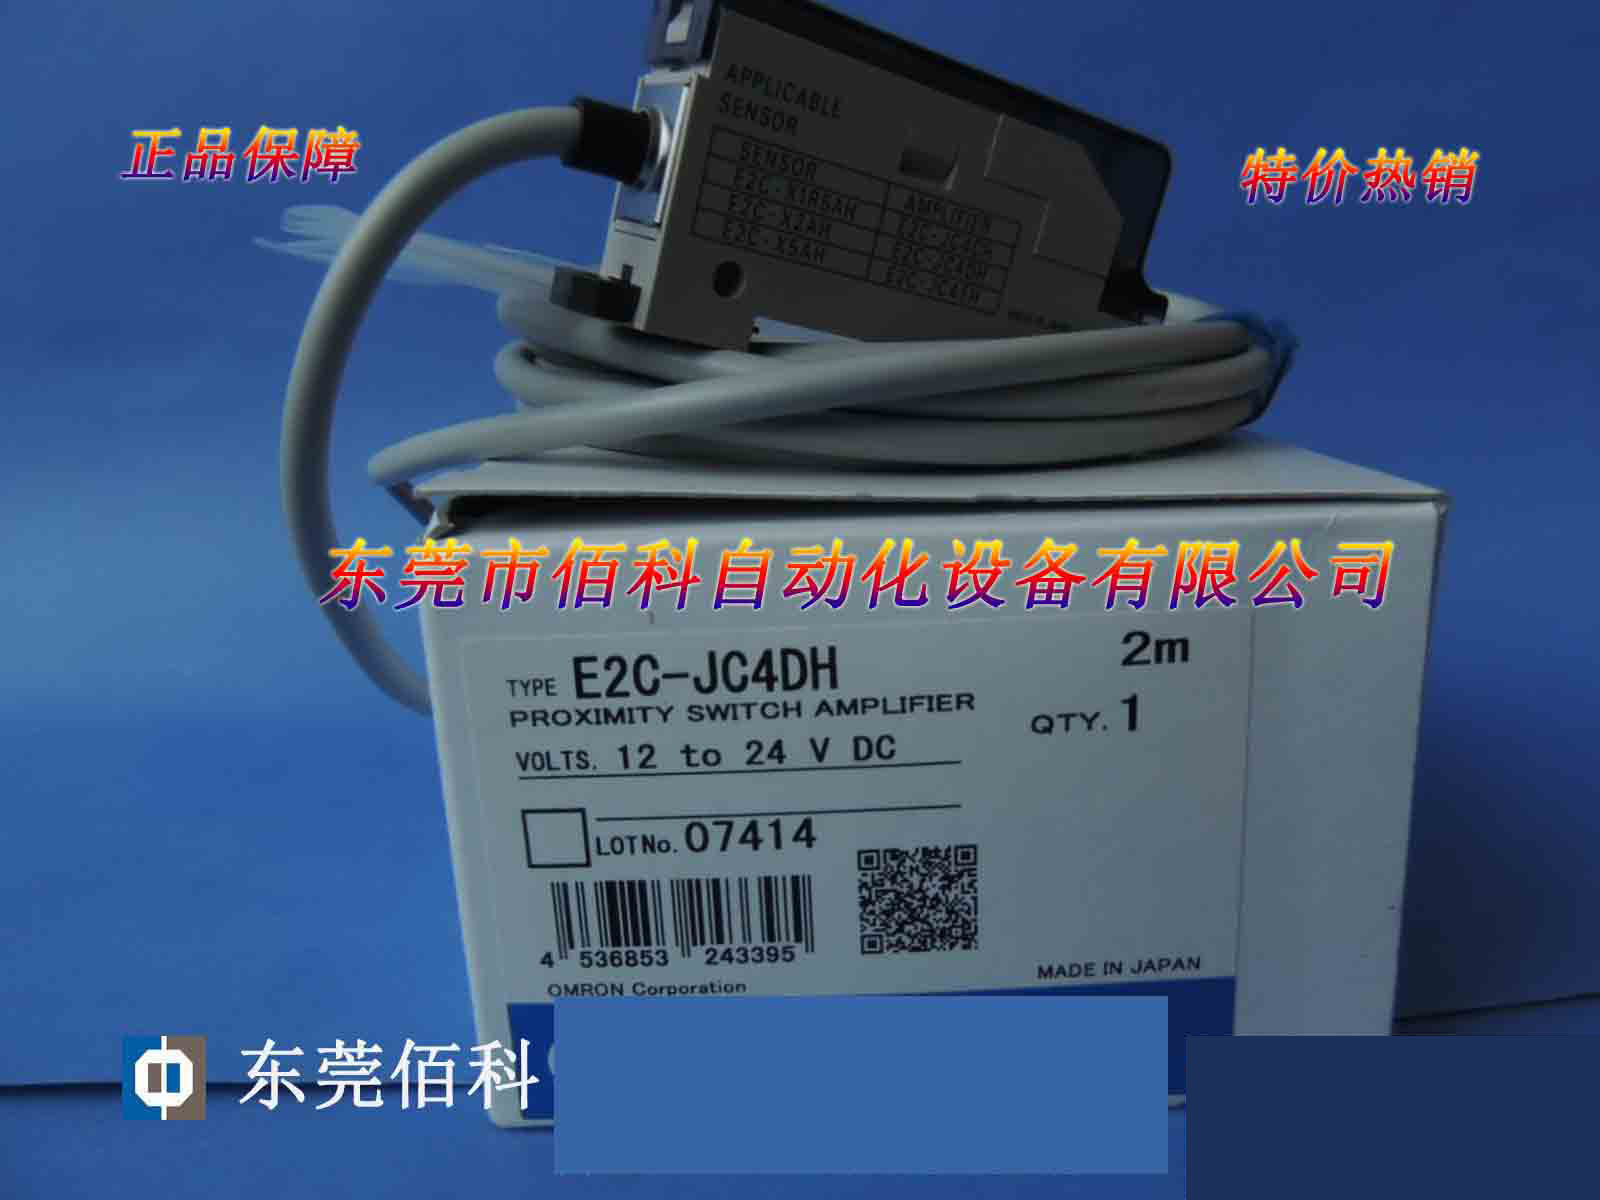 New original OMRON photoelectric switch E2C-JC4DH 2MNew original OMRON photoelectric switch E2C-JC4DH 2M